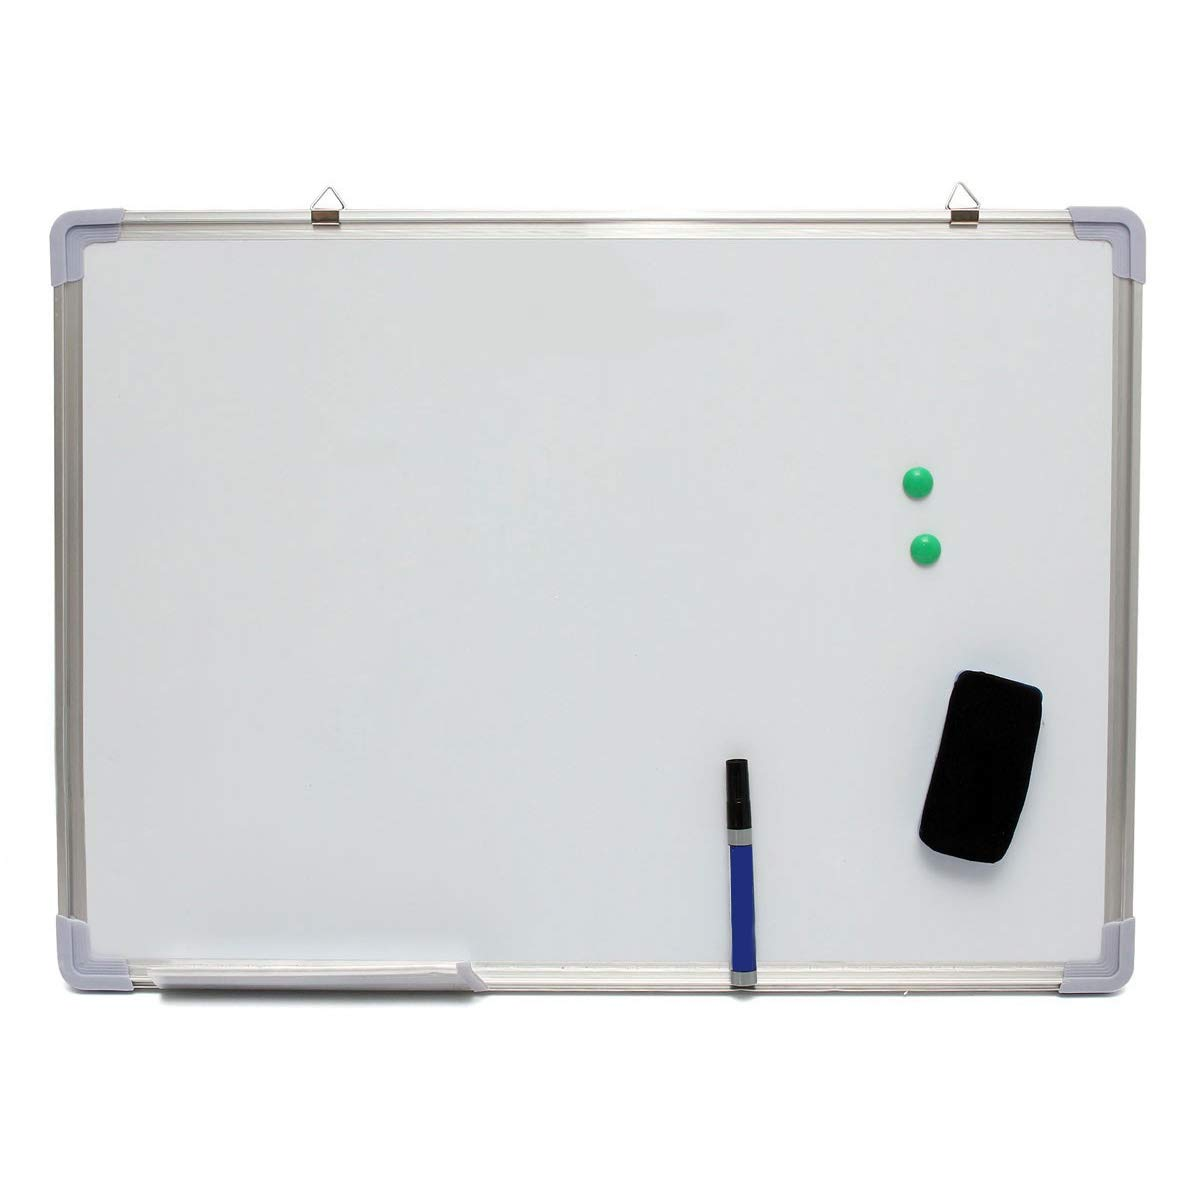 UL 28x20 inch Magnetic Dry Erase Whiteboard Writing Notice Board Single Side Office School Message